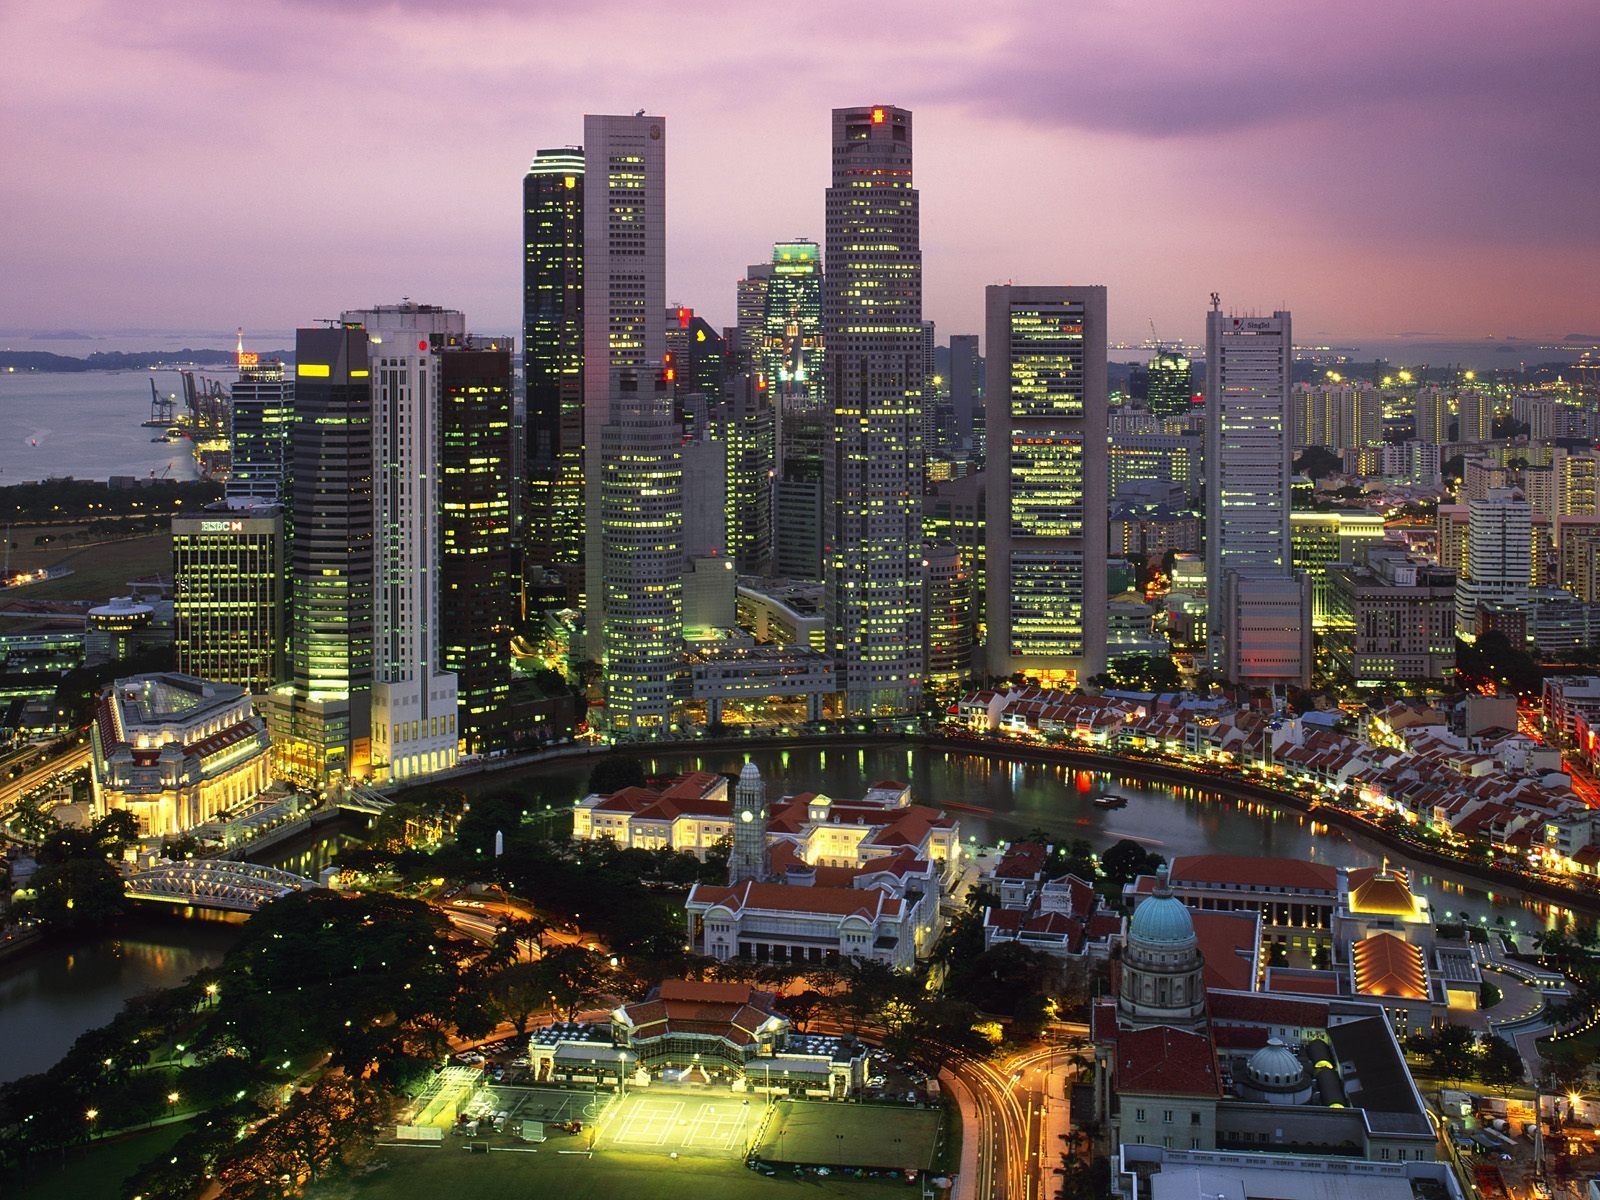 Travel Instinct: Singapore